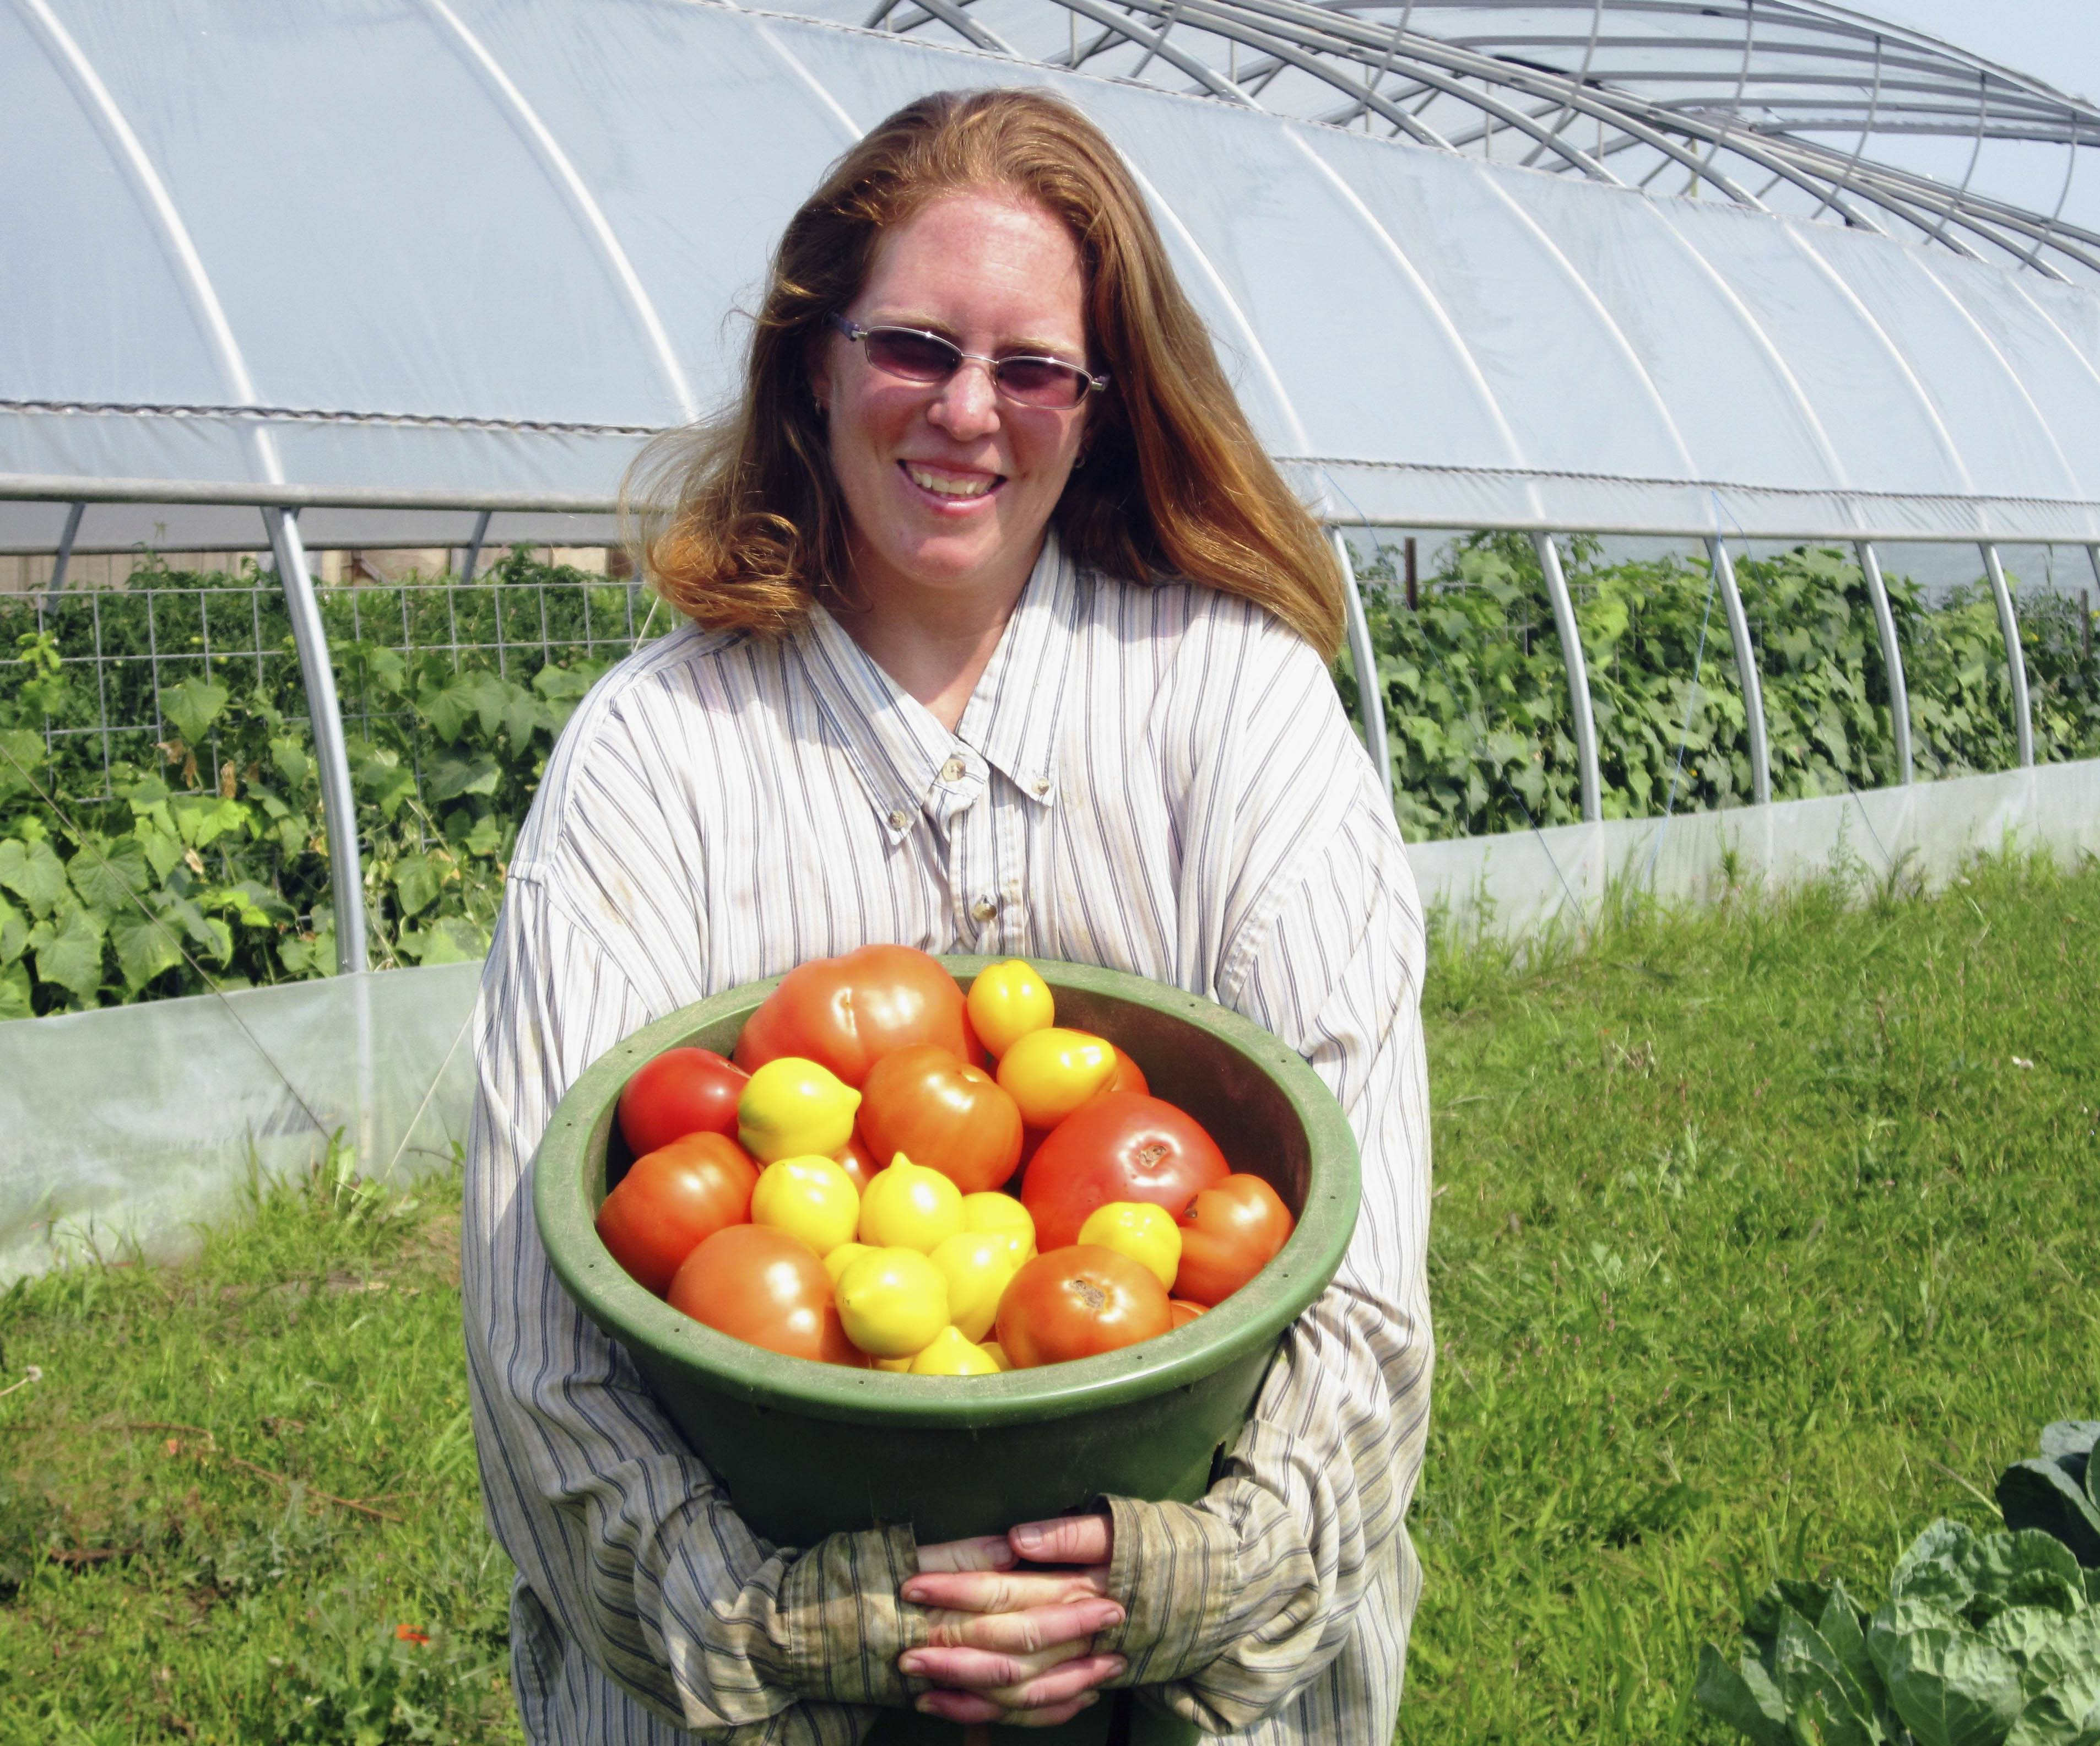 Mary Brubach, of Garden Prairie, Ill., holds up a basket of tomatoes picked to sell in the Belvidere Farmer's Market.